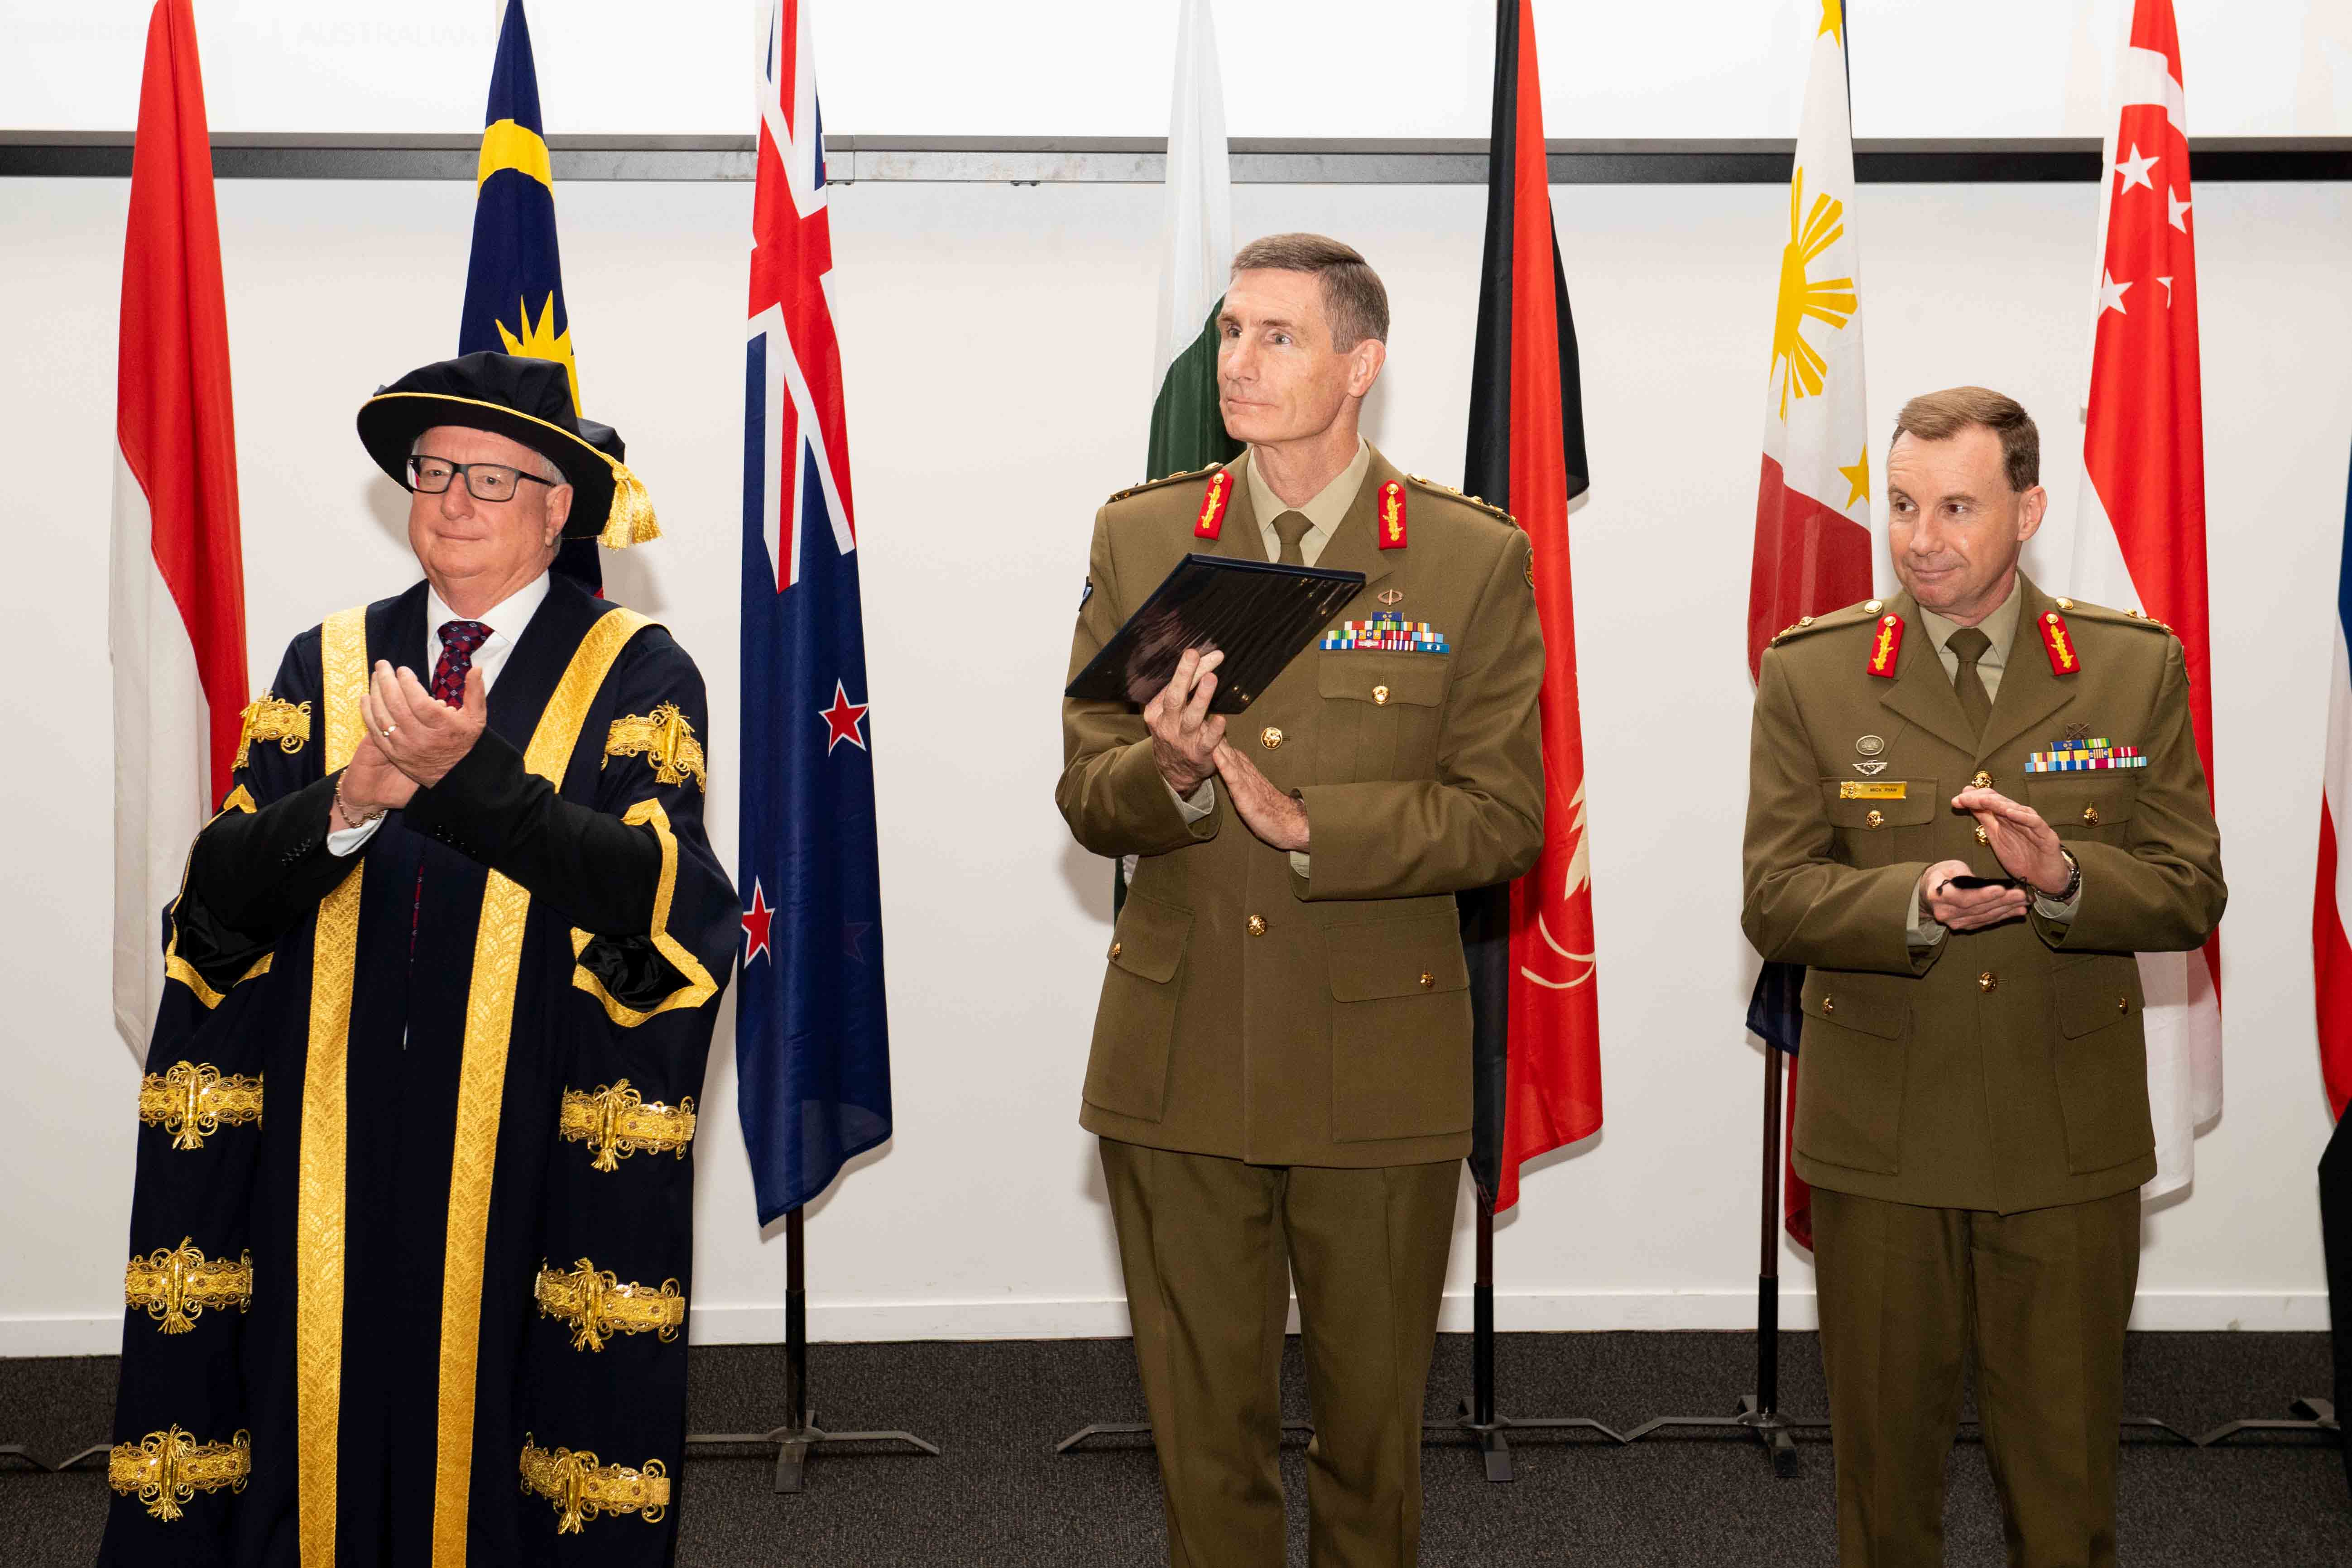 From left: Mr John Stanhope, AM, Chancellor; General Angus Campbell, AO, DSC Chief of the Defence Force and Major General Mick Ryan, AM, Commander Australian Defence College